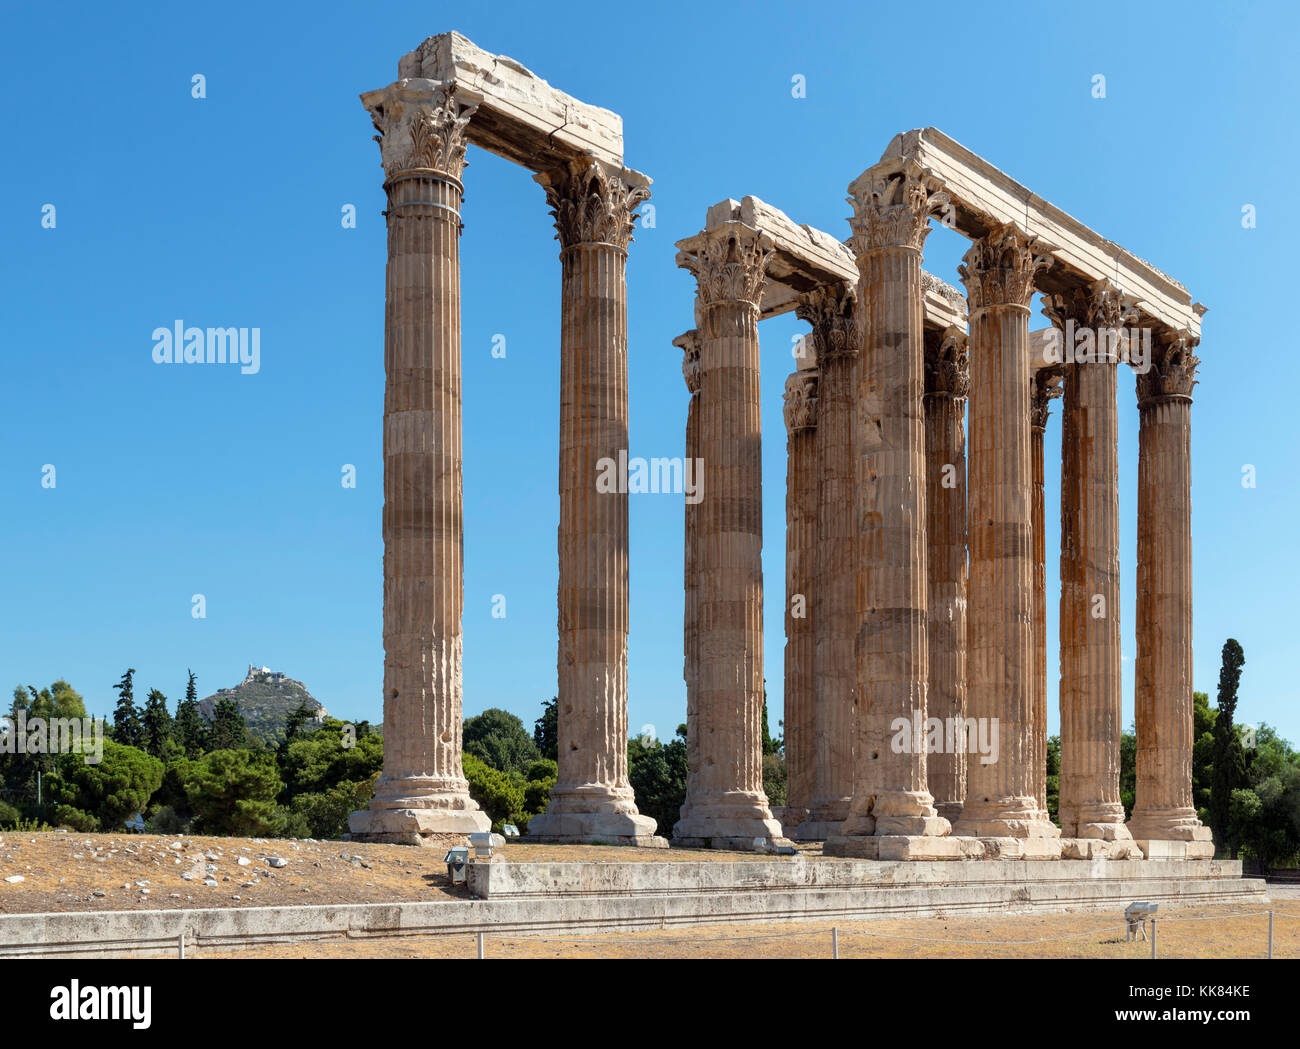 The Temple of Olympian Zeus (Olympeion) with Mount Lycabettus (Lykavittos Hill) in the background, Athens, Greece - Stock Image